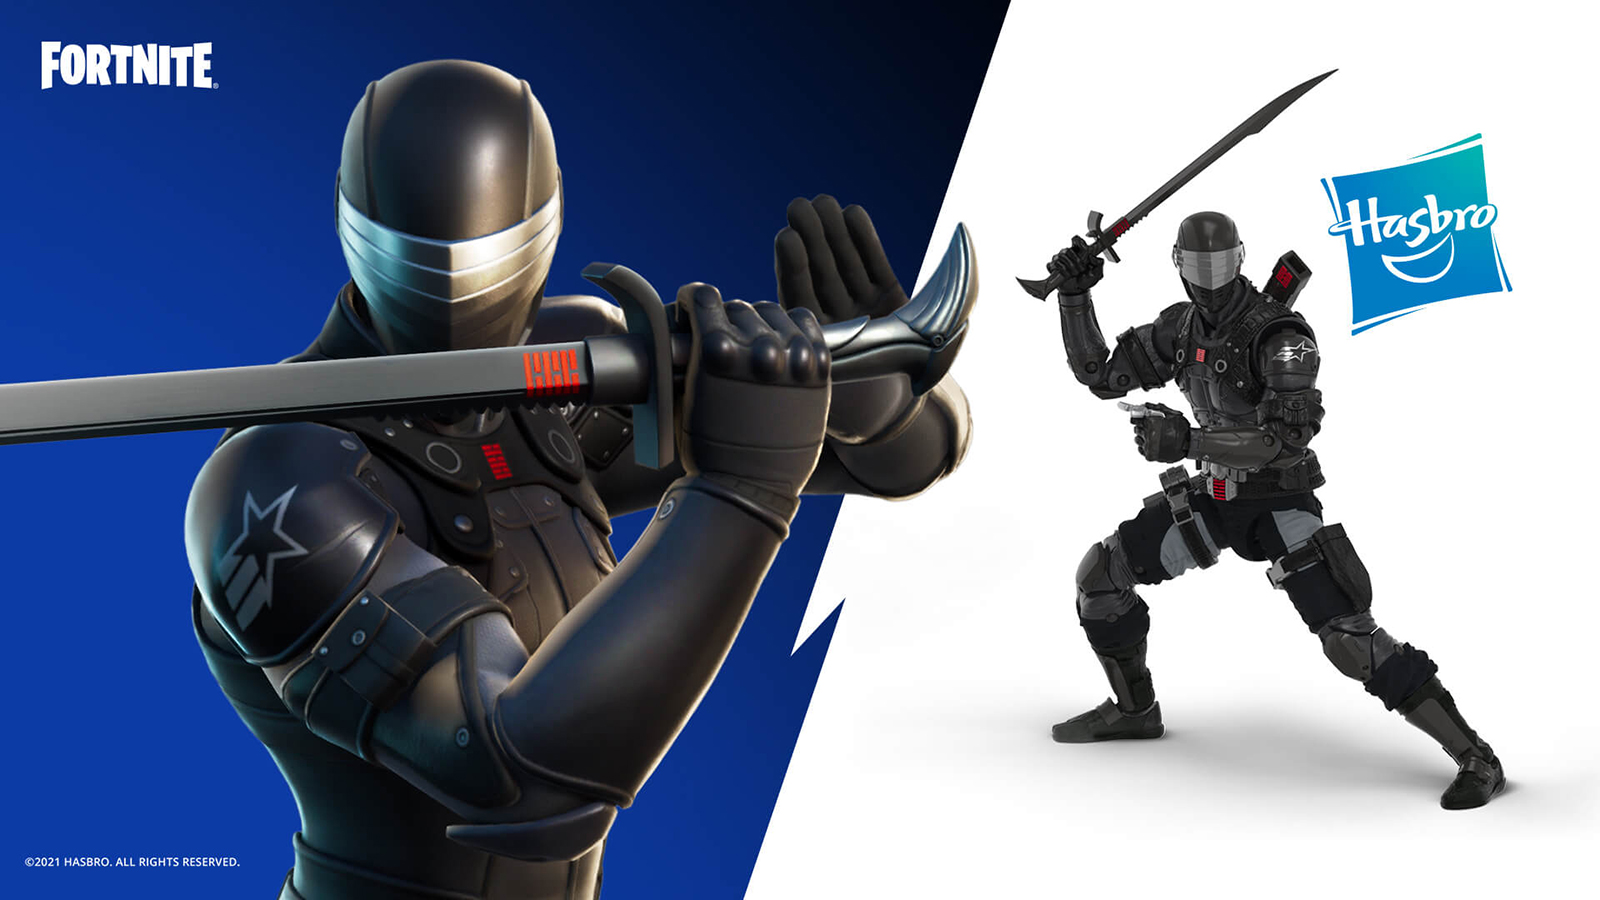 'Fortnite' gets a 'GI Joe' character with a matching action figure | Engadget